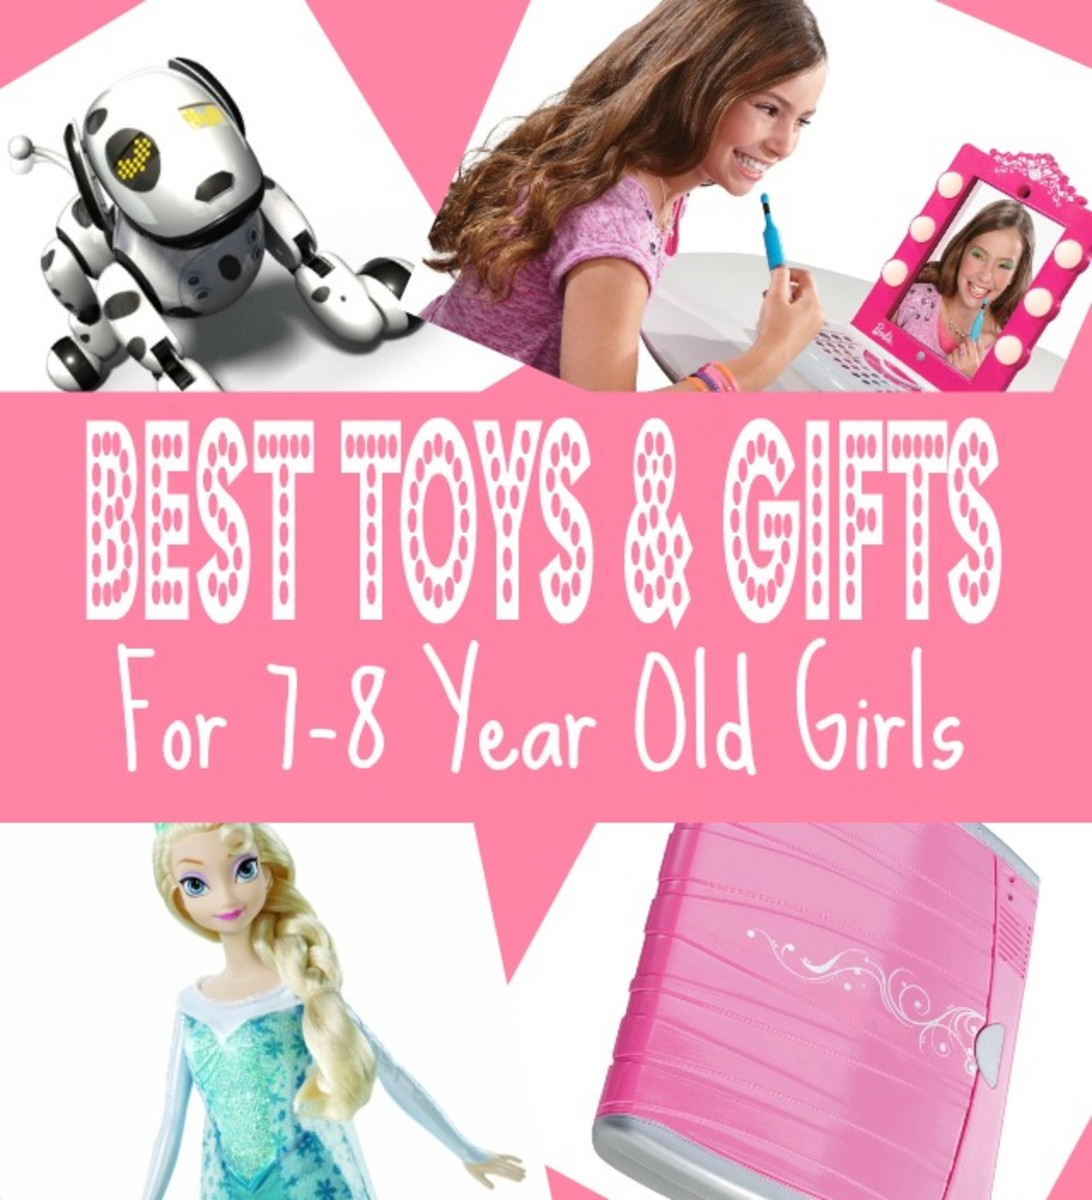 Best Toys Gifts For 7 Year Old Girls : Best gifts top toys for year old girls in